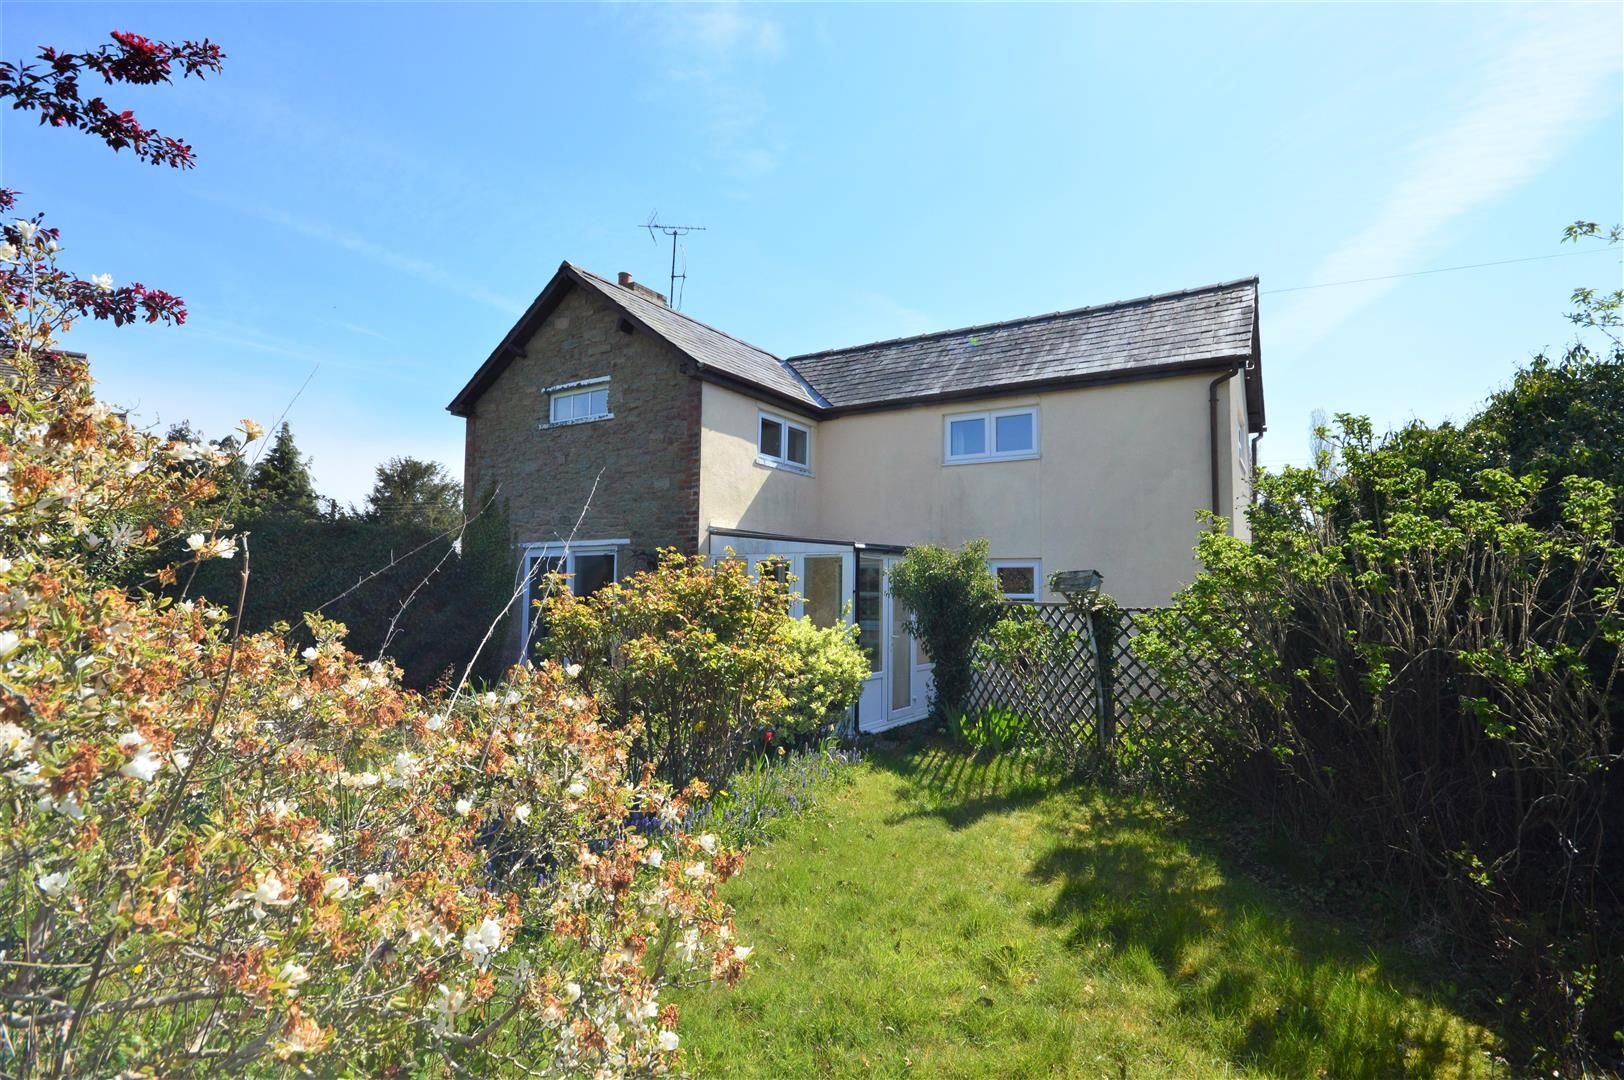 2 bed detached for sale in Richards Castle, SY8